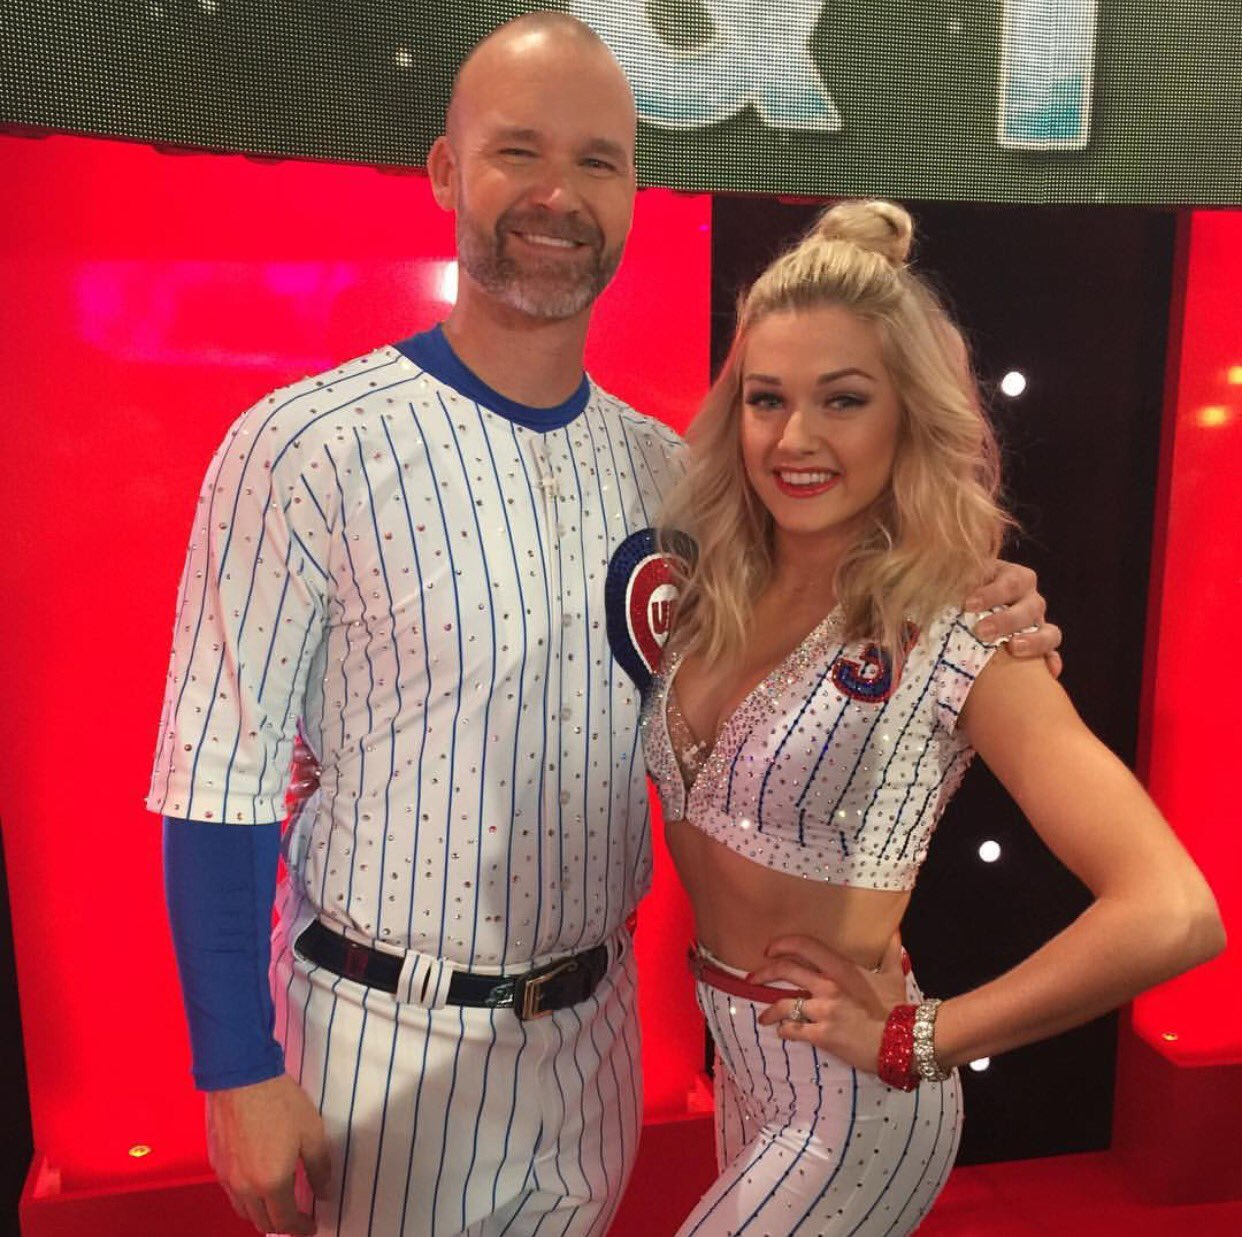 Presenting: David Ross in a bedazzled Cubs uniform for his Dancing with the Stars debut. (via @D_Ross3) https://t.co/PL58LEOq8v